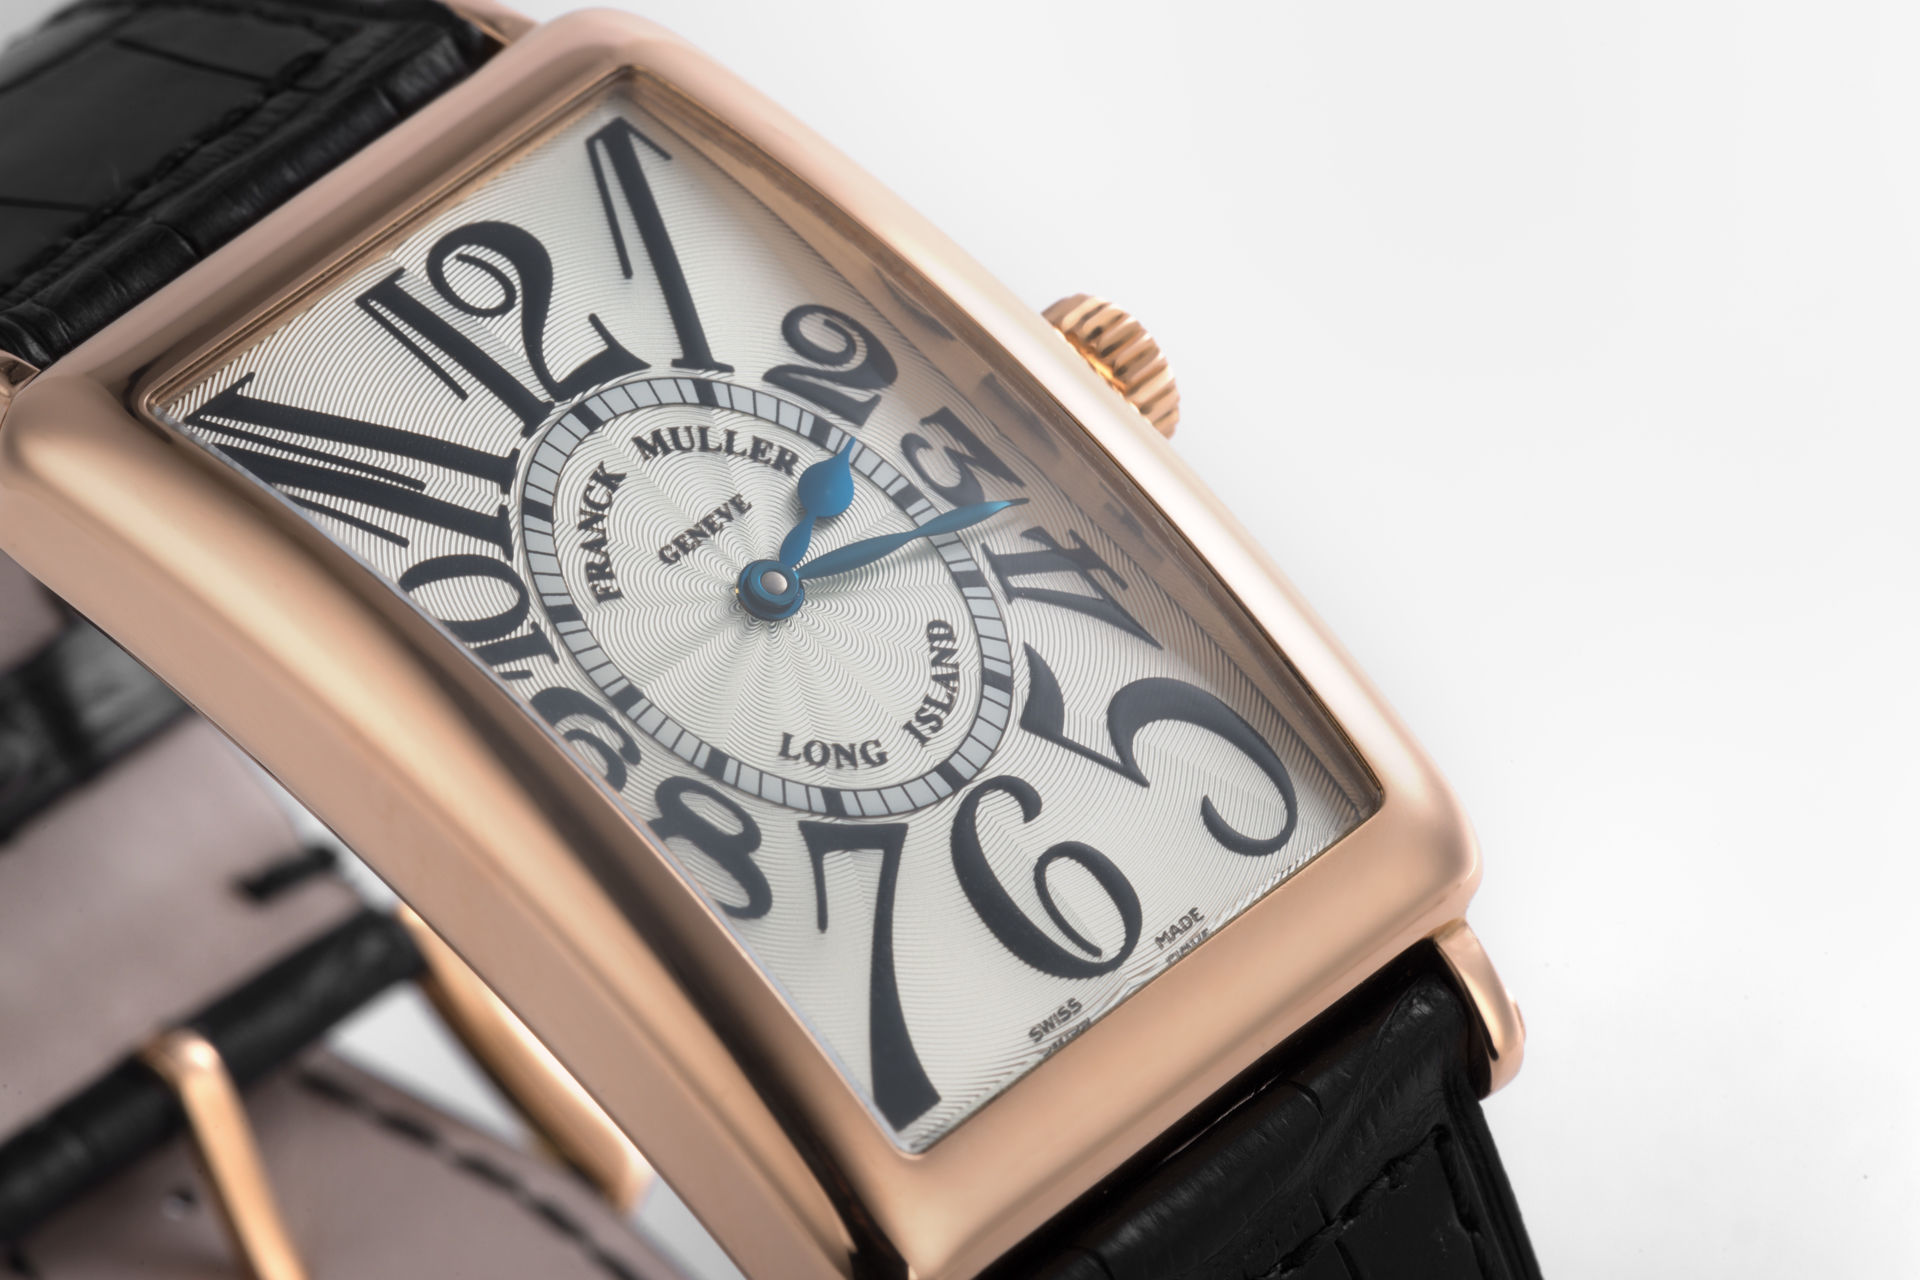 ref 1000 SC | 18ct Rose Gold | Franck Muller Long Island